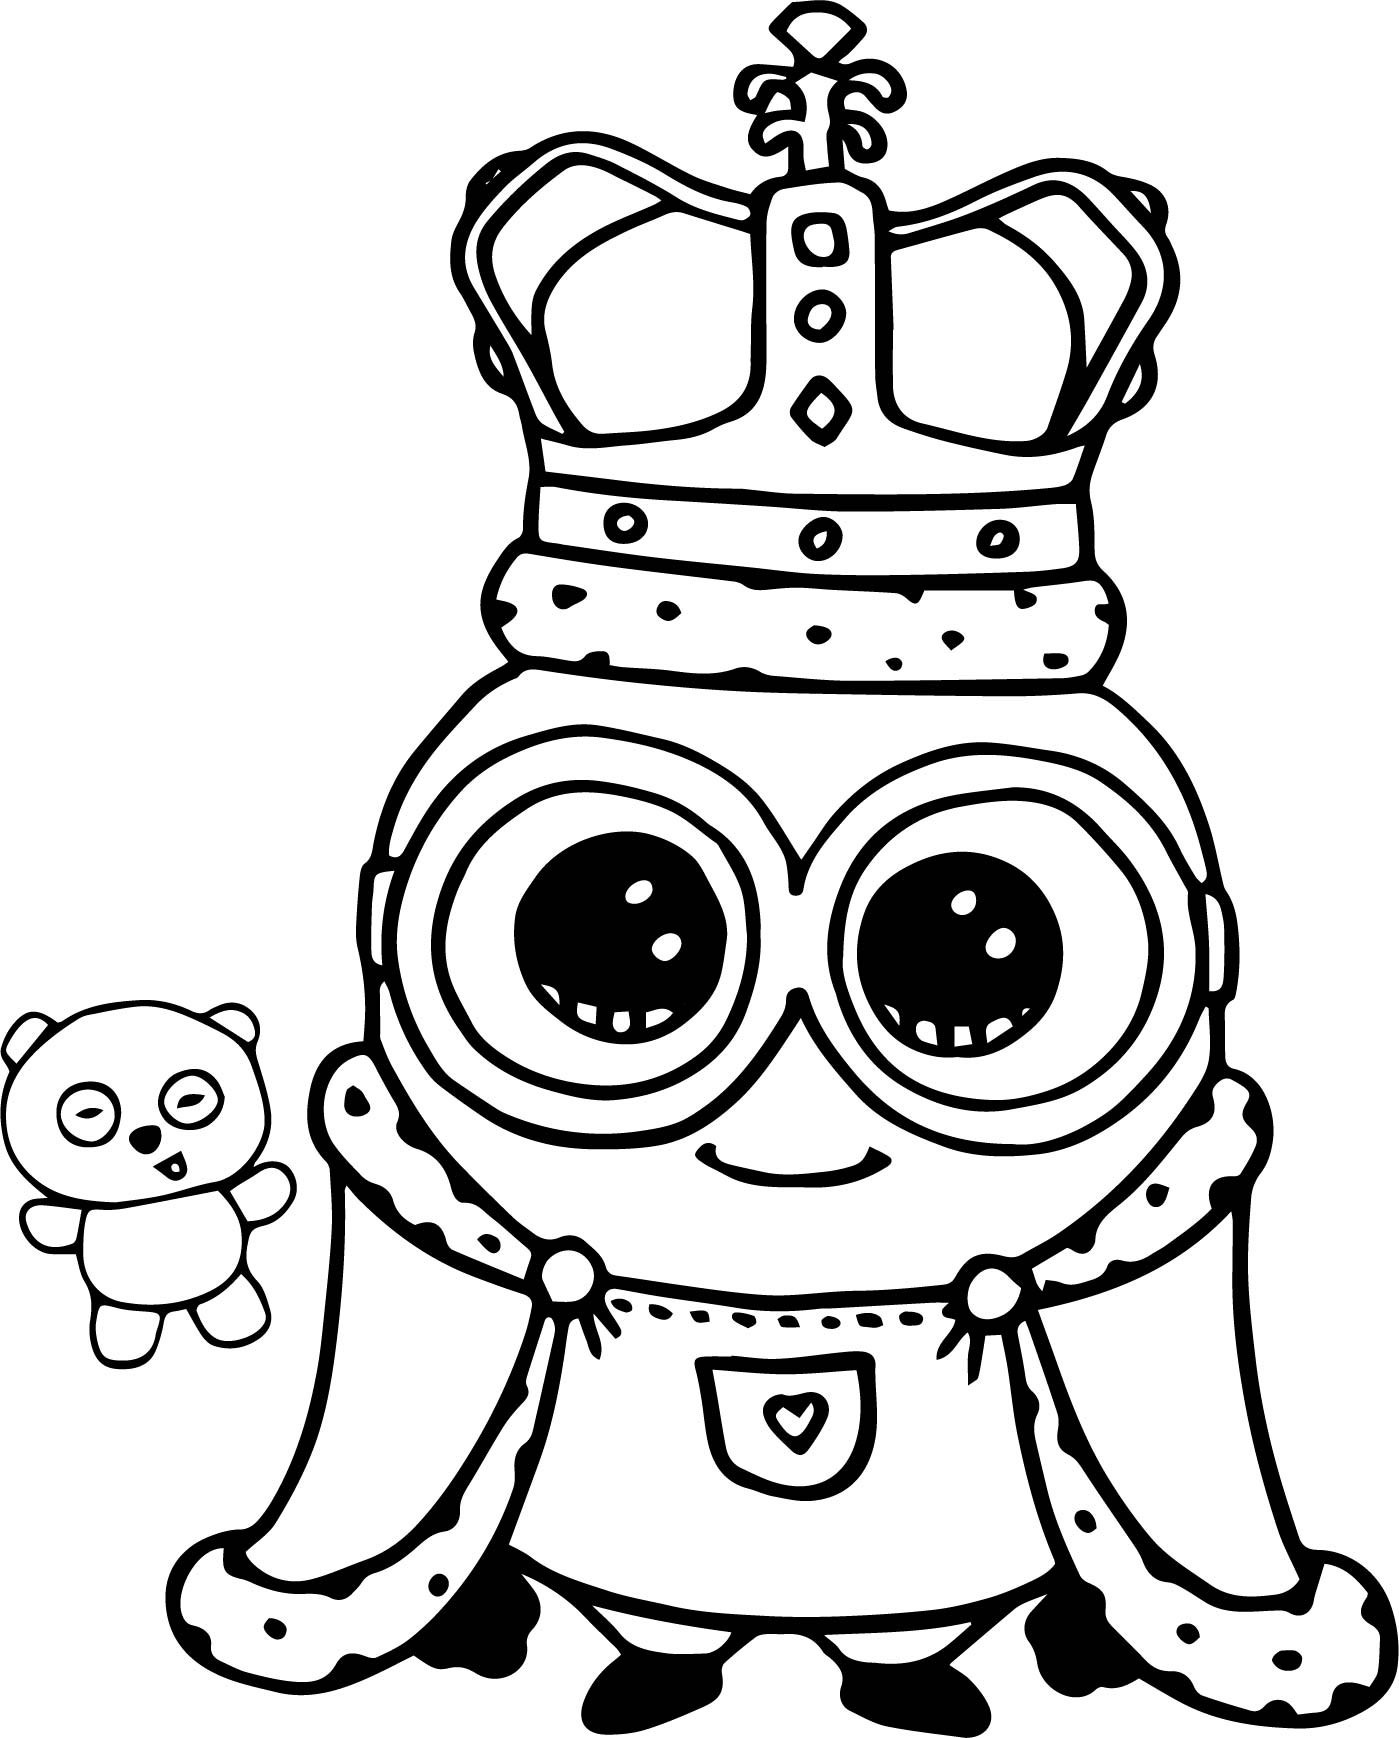 coloring printable minions print download minion coloring pages for kids to have printable minions coloring